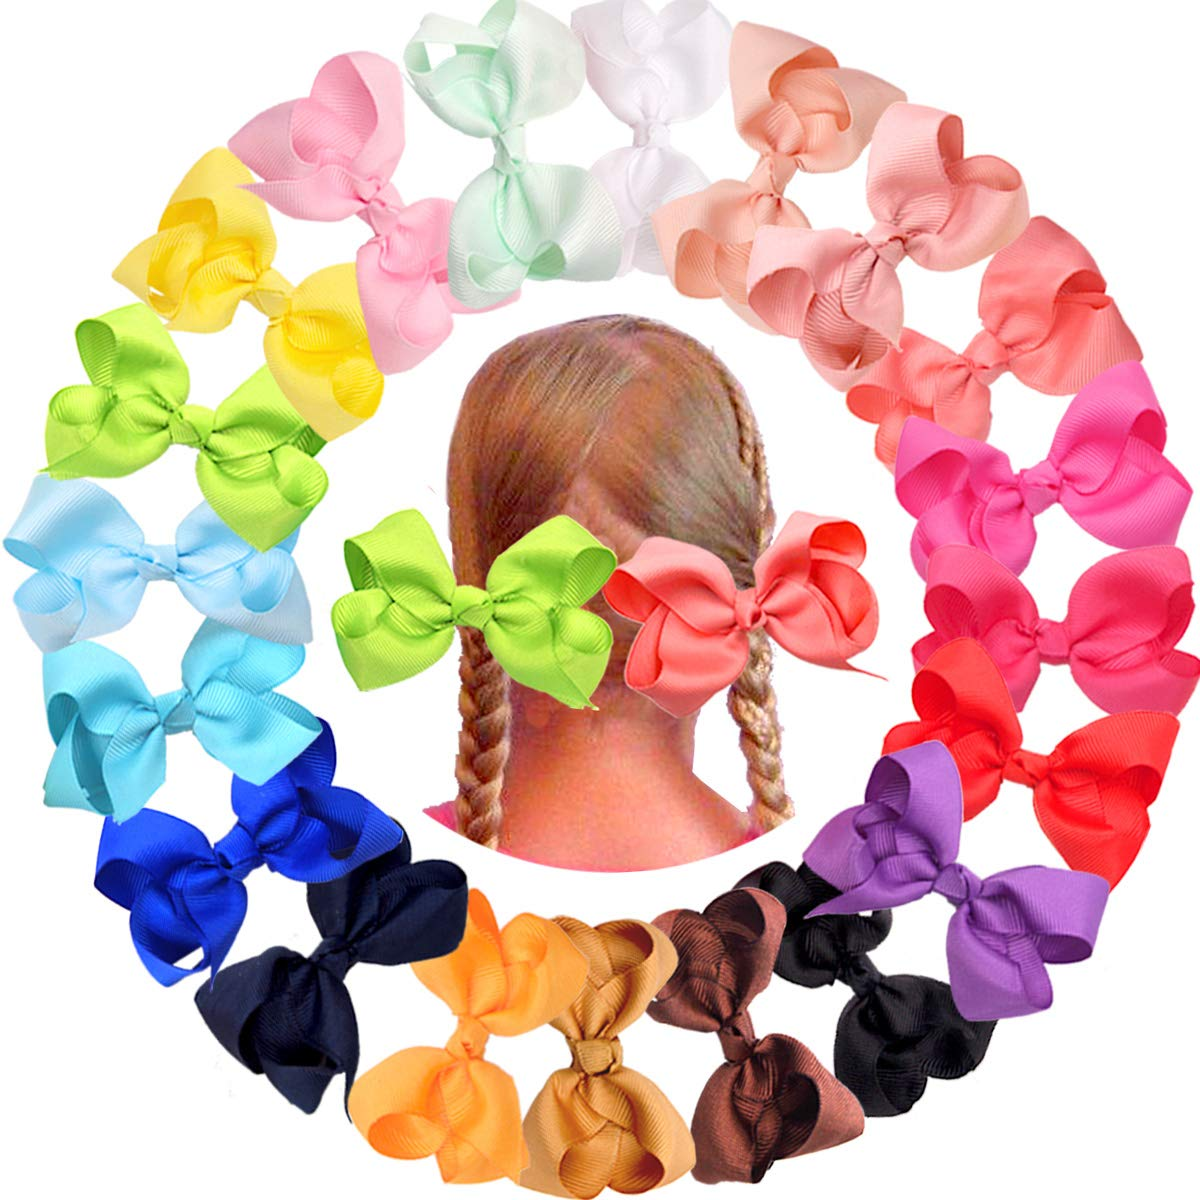 Kind-Hearted 1 Hair Clip Bow Girls Baby Kids Accessories Snap Alligator Slides Weddind Bridal Cool In Summer And Warm In Winter Hair Accessories